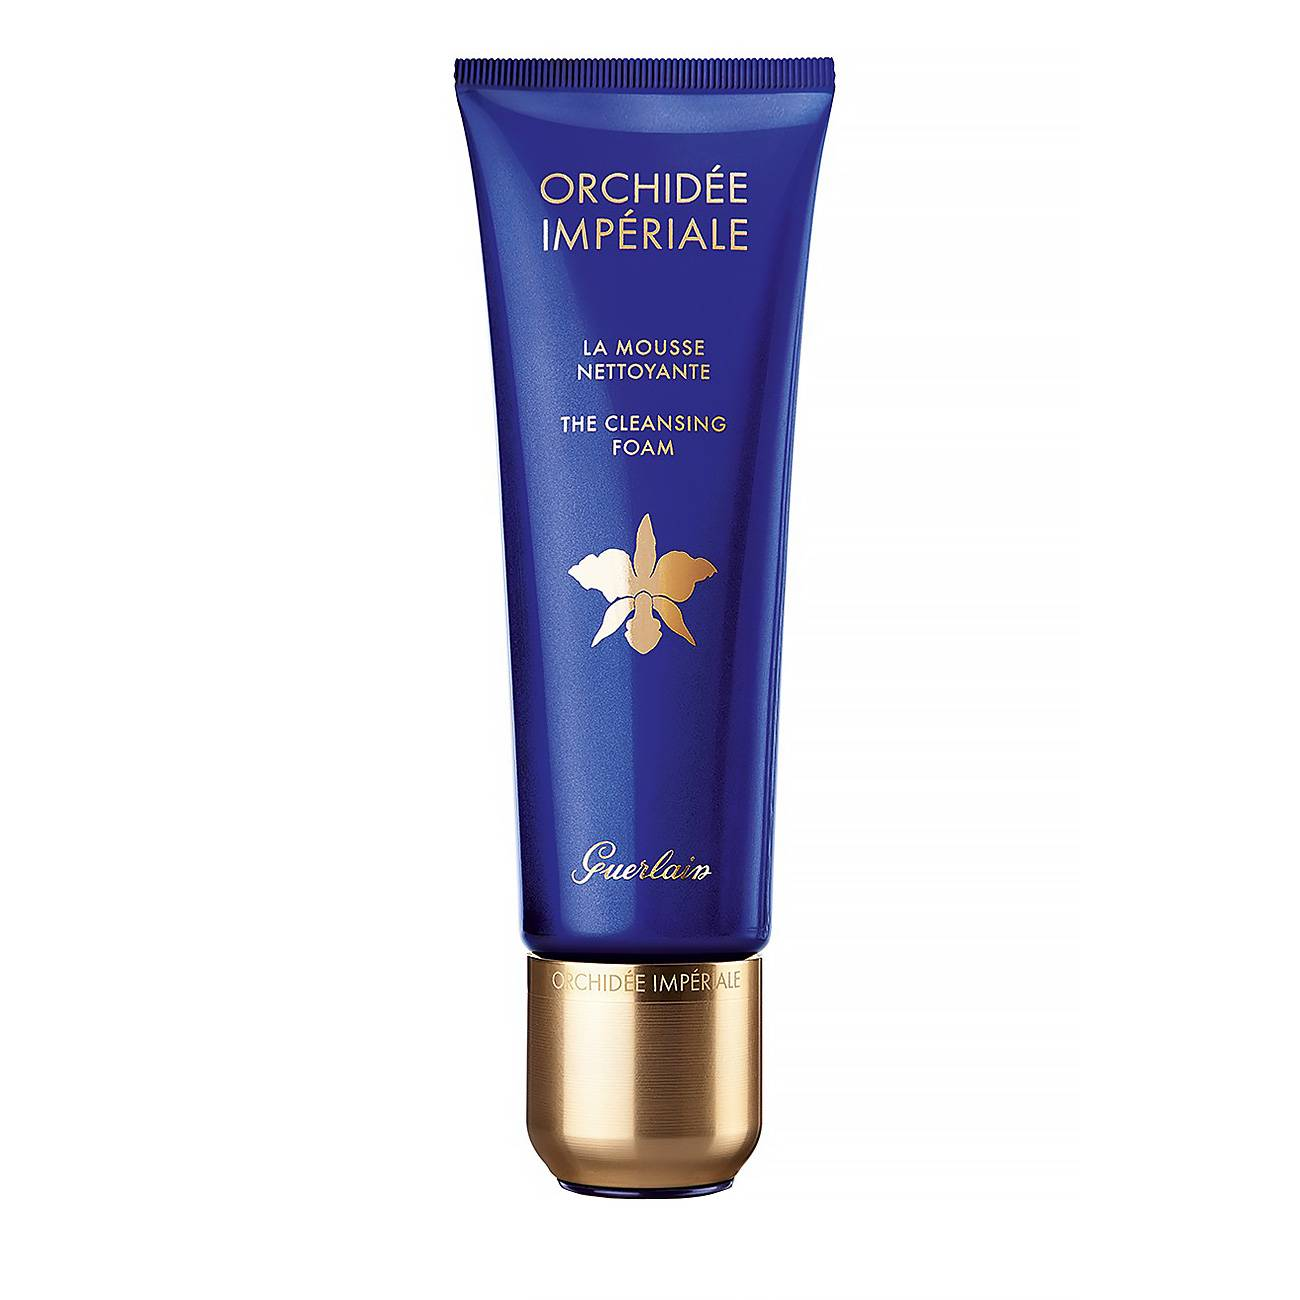 ORCHIDEE IMPERIALE FOAM CLEANSER 125ml